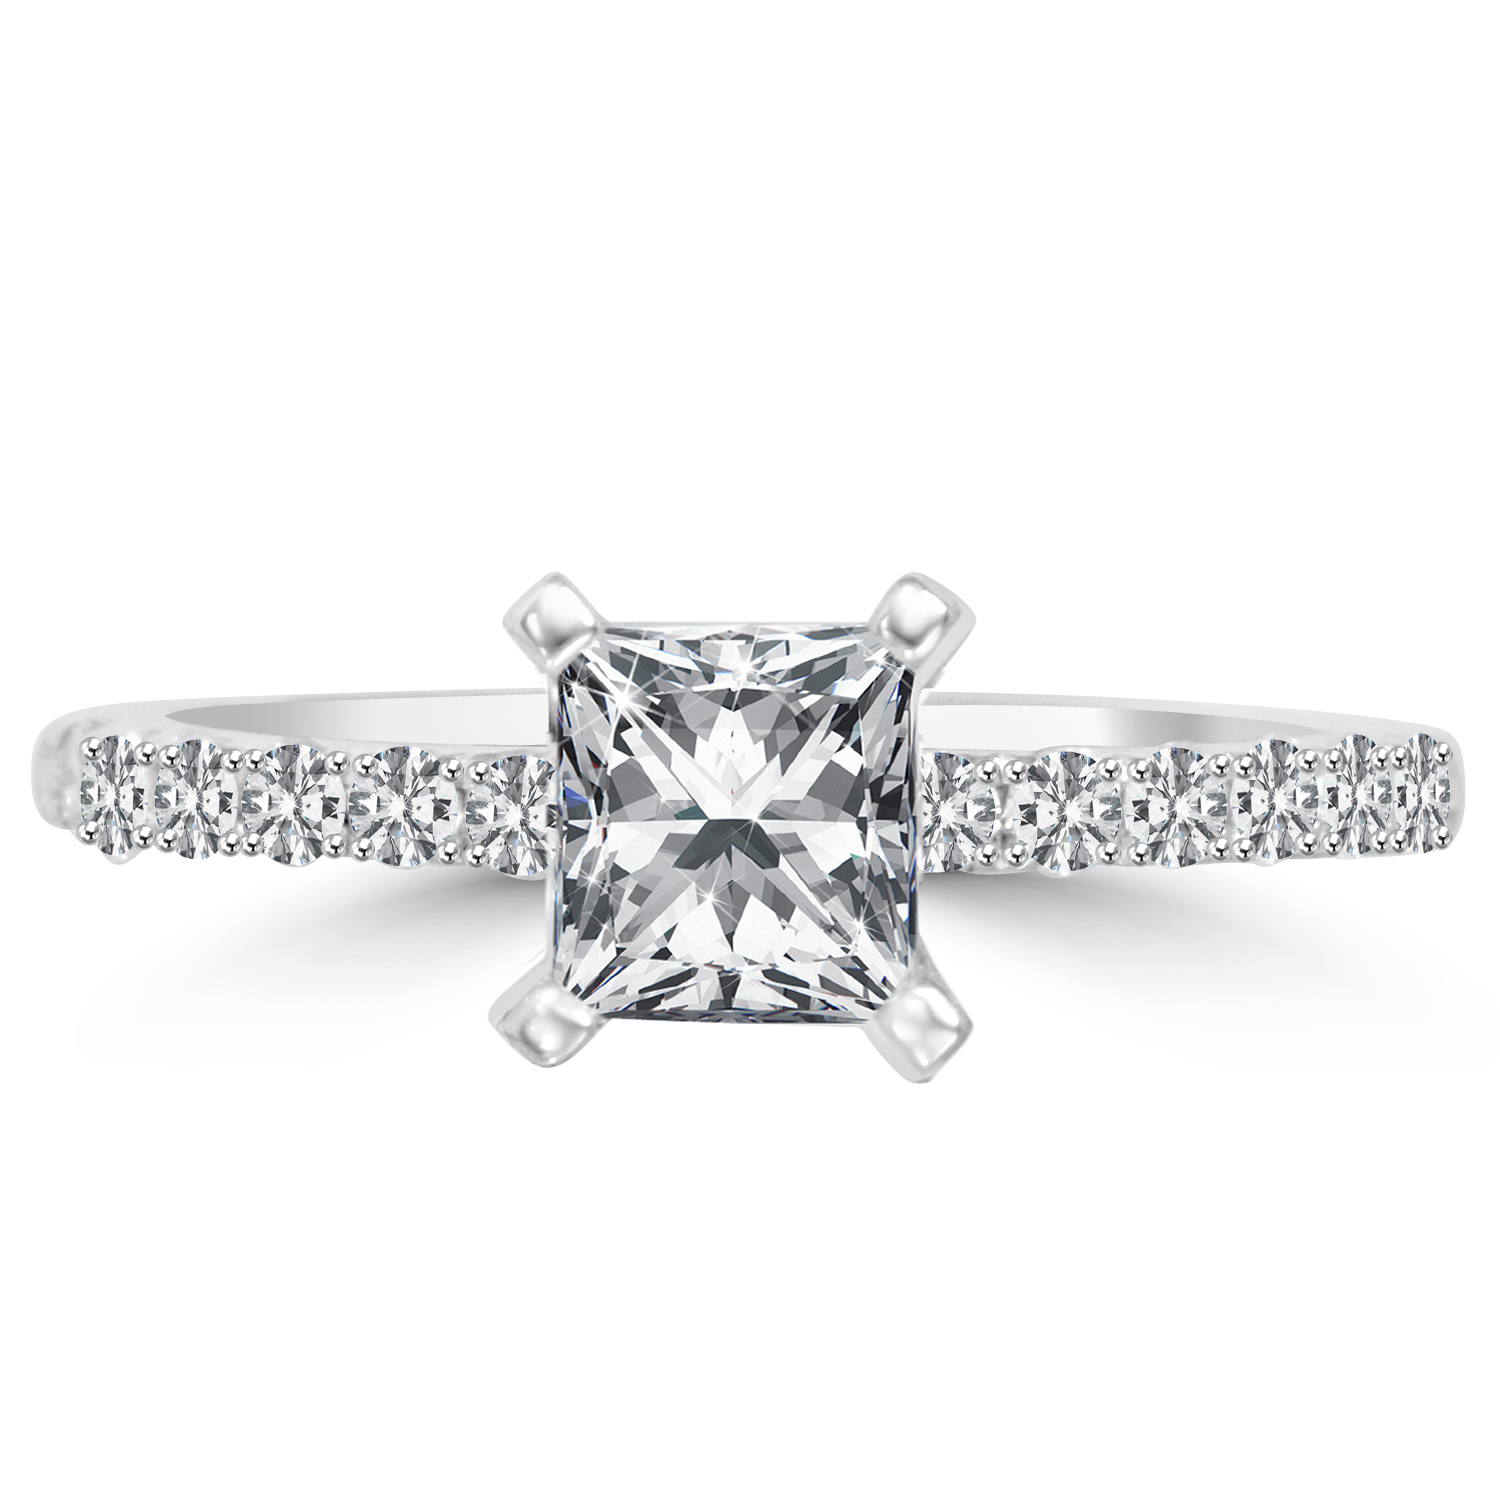 1 ct princess cut engagement ring vs1 e 14k white